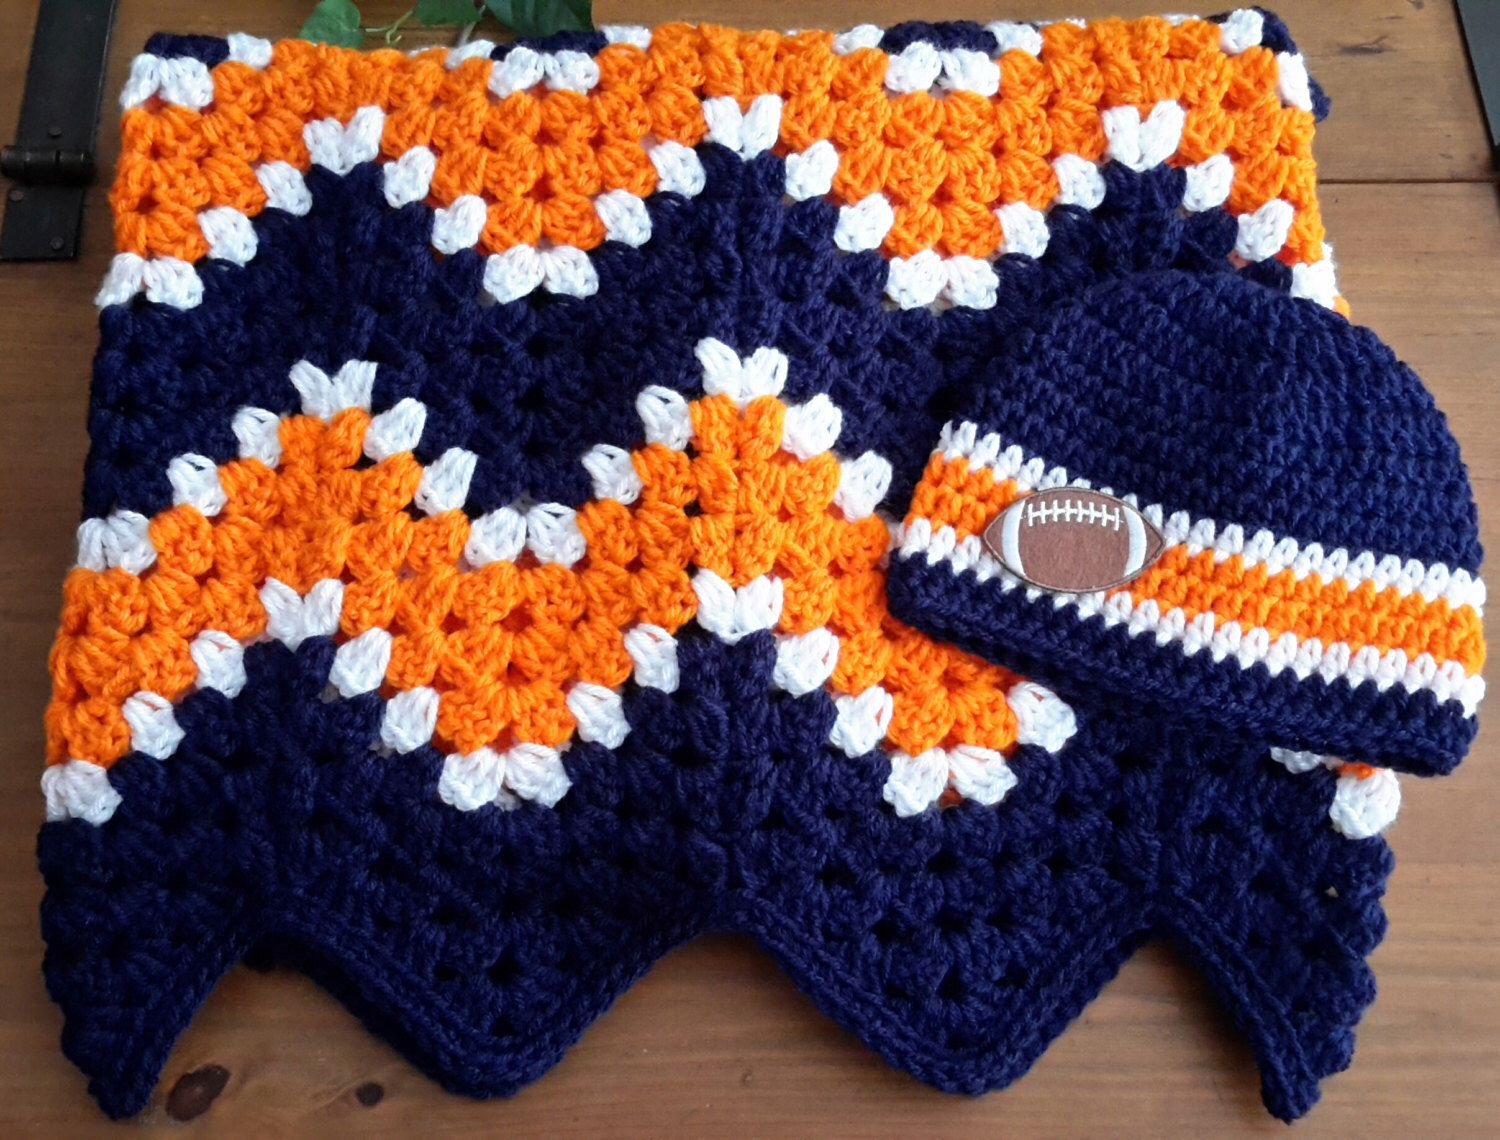 Baby blanket toddler blanket ripple chevron denver broncos baby blanket toddler blanket ripple chevron denver broncos colors chicago bears blue and orange baby shower gift fast shipping auburn by fandeluxe Images